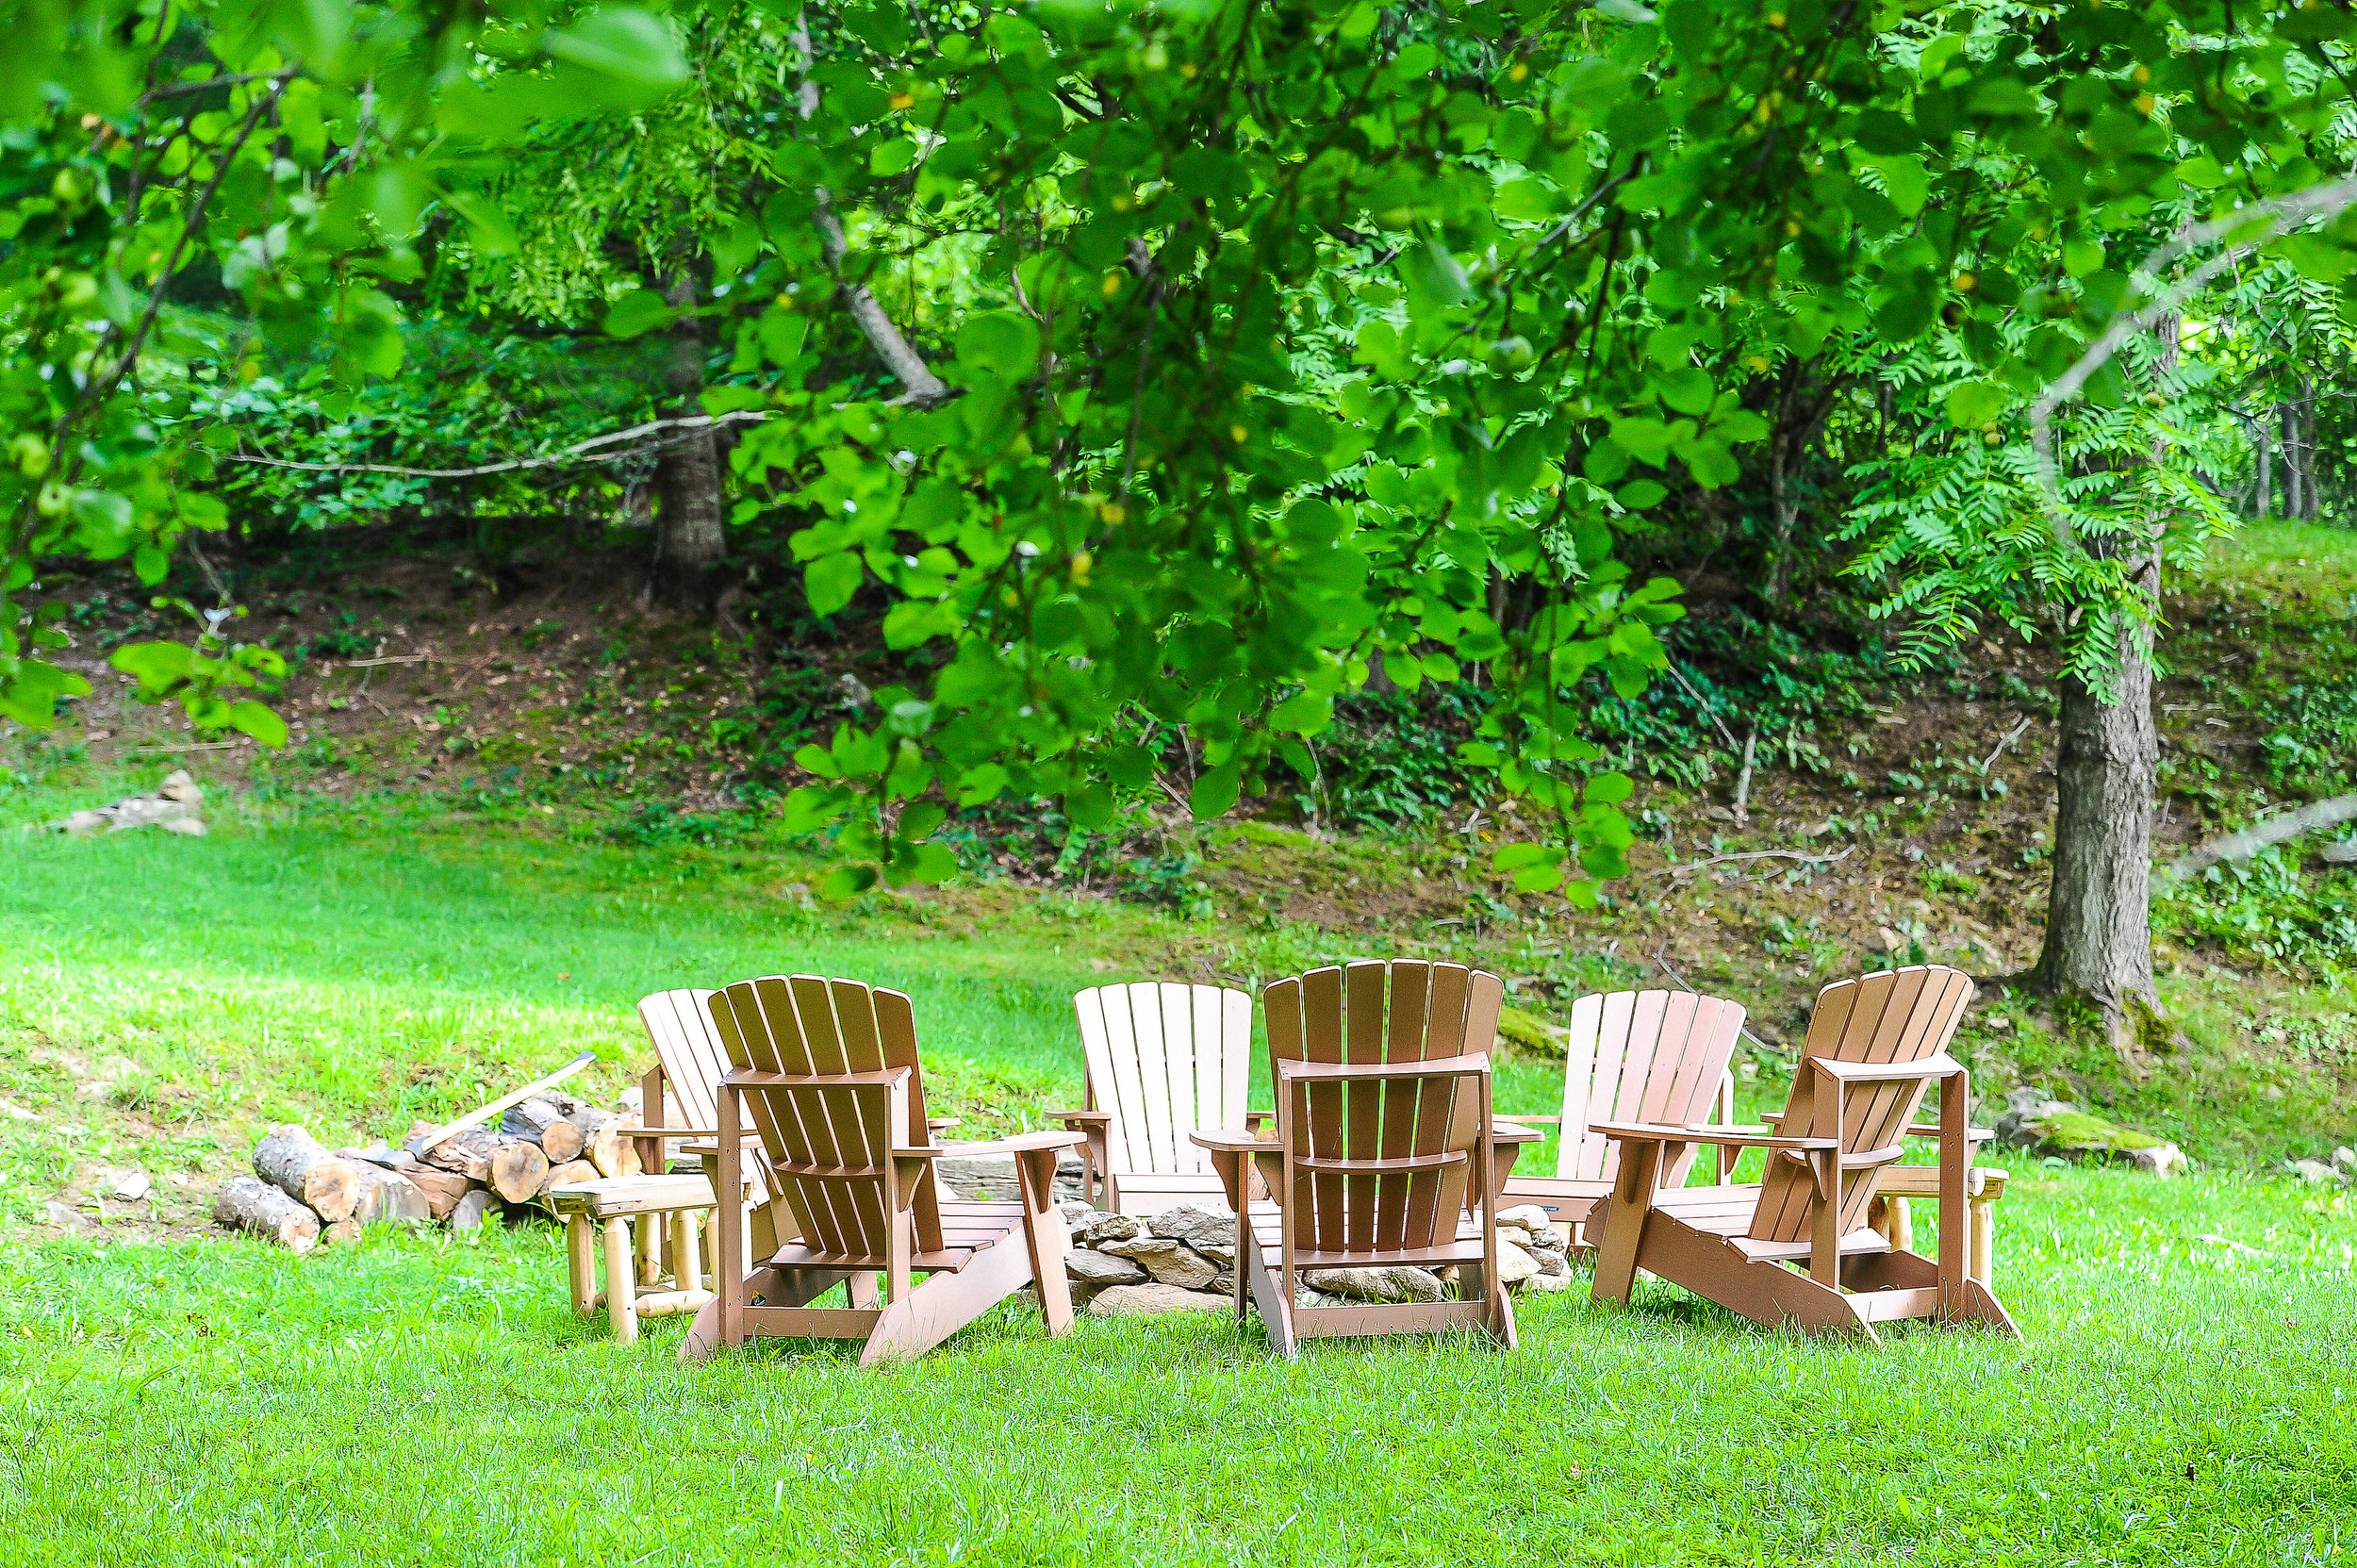 R & R - Bliss Farm and Retreat is located on 50 mountain acres in the Pisgah National Forest. Participants will have downtime every day to explore the trails on the property, relax by the pond, and gather around the campfire.